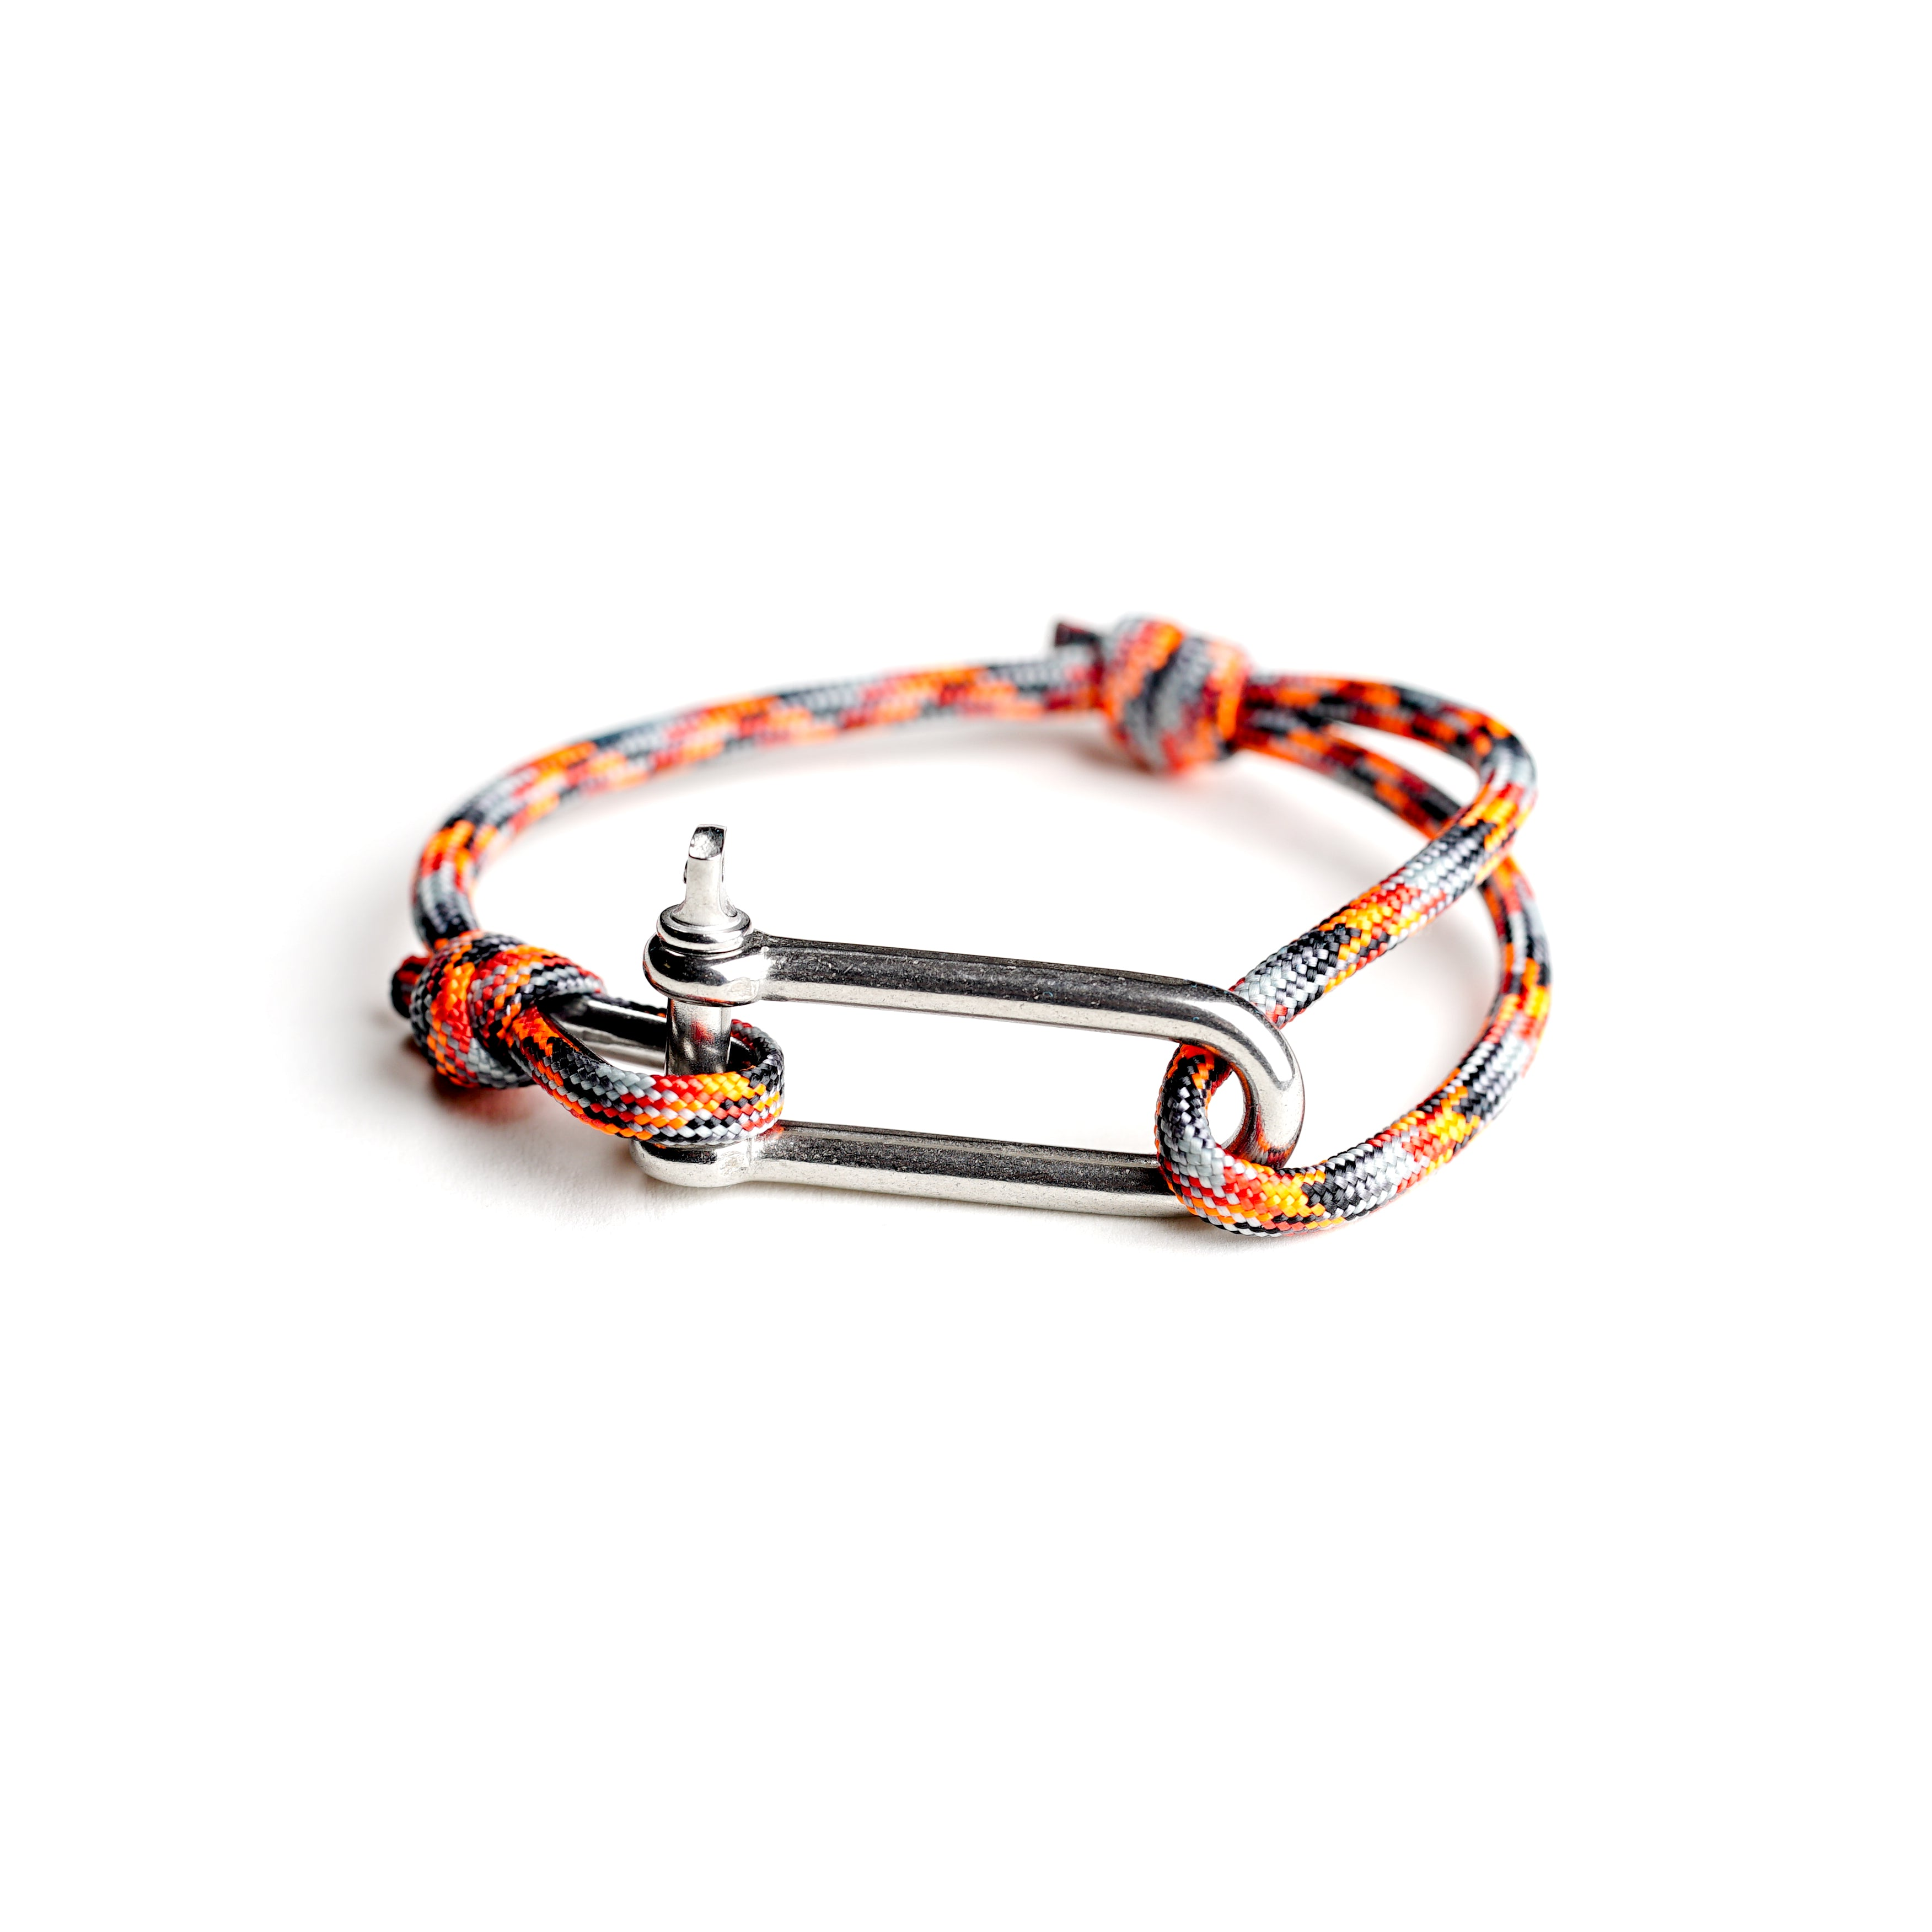 Paracord Nautical Bracelet with Stainless Steel Shackle - Orange & Grey